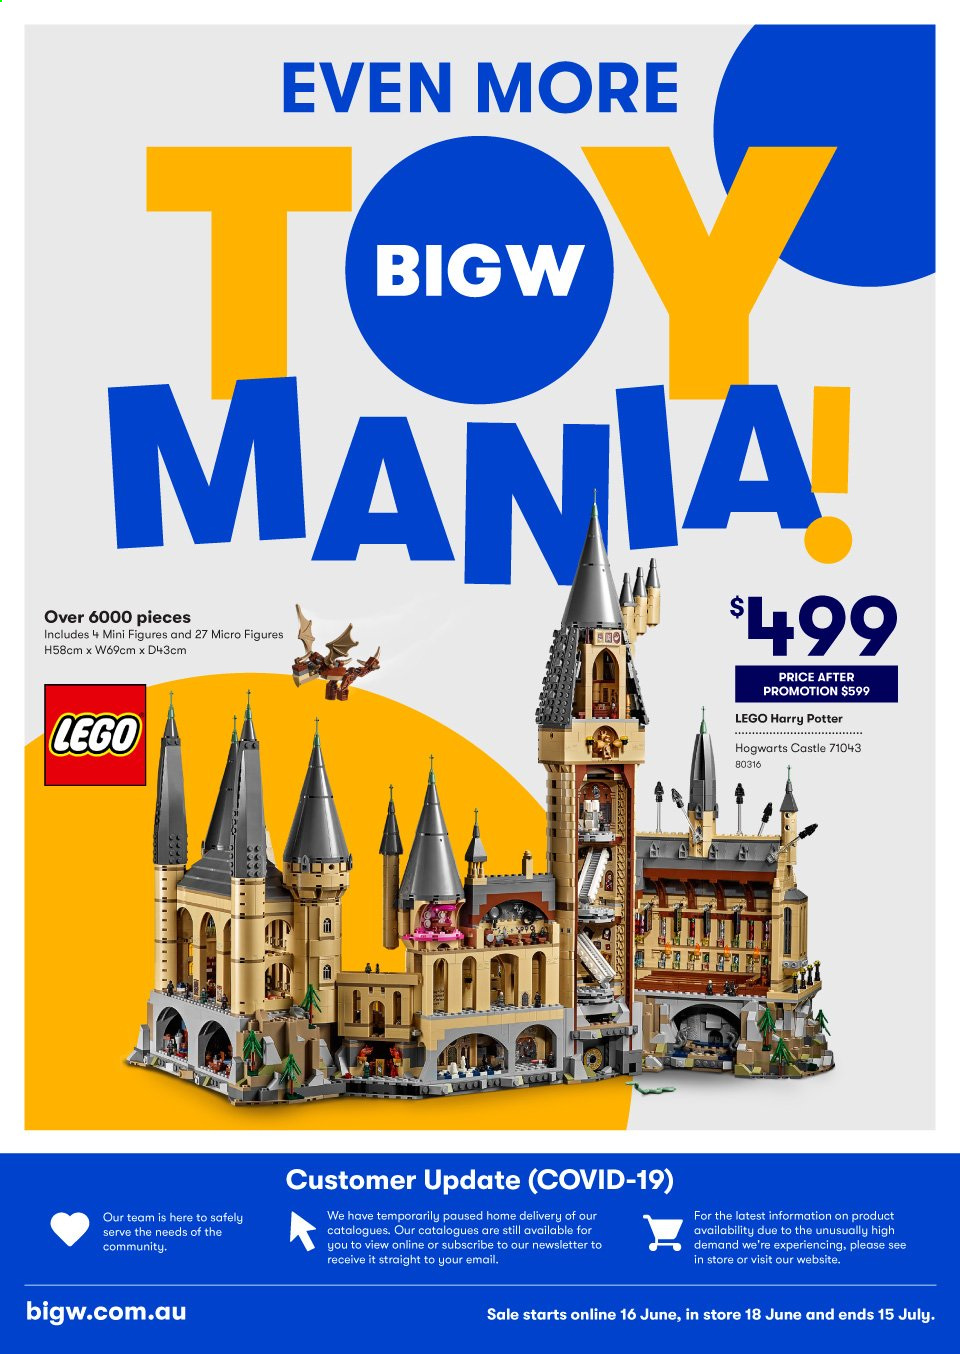 BIG W Catalogue - 16.6.2020 - 15.7.2020 - Sales products - lego, lego harry potter, minifigure. Page 1.